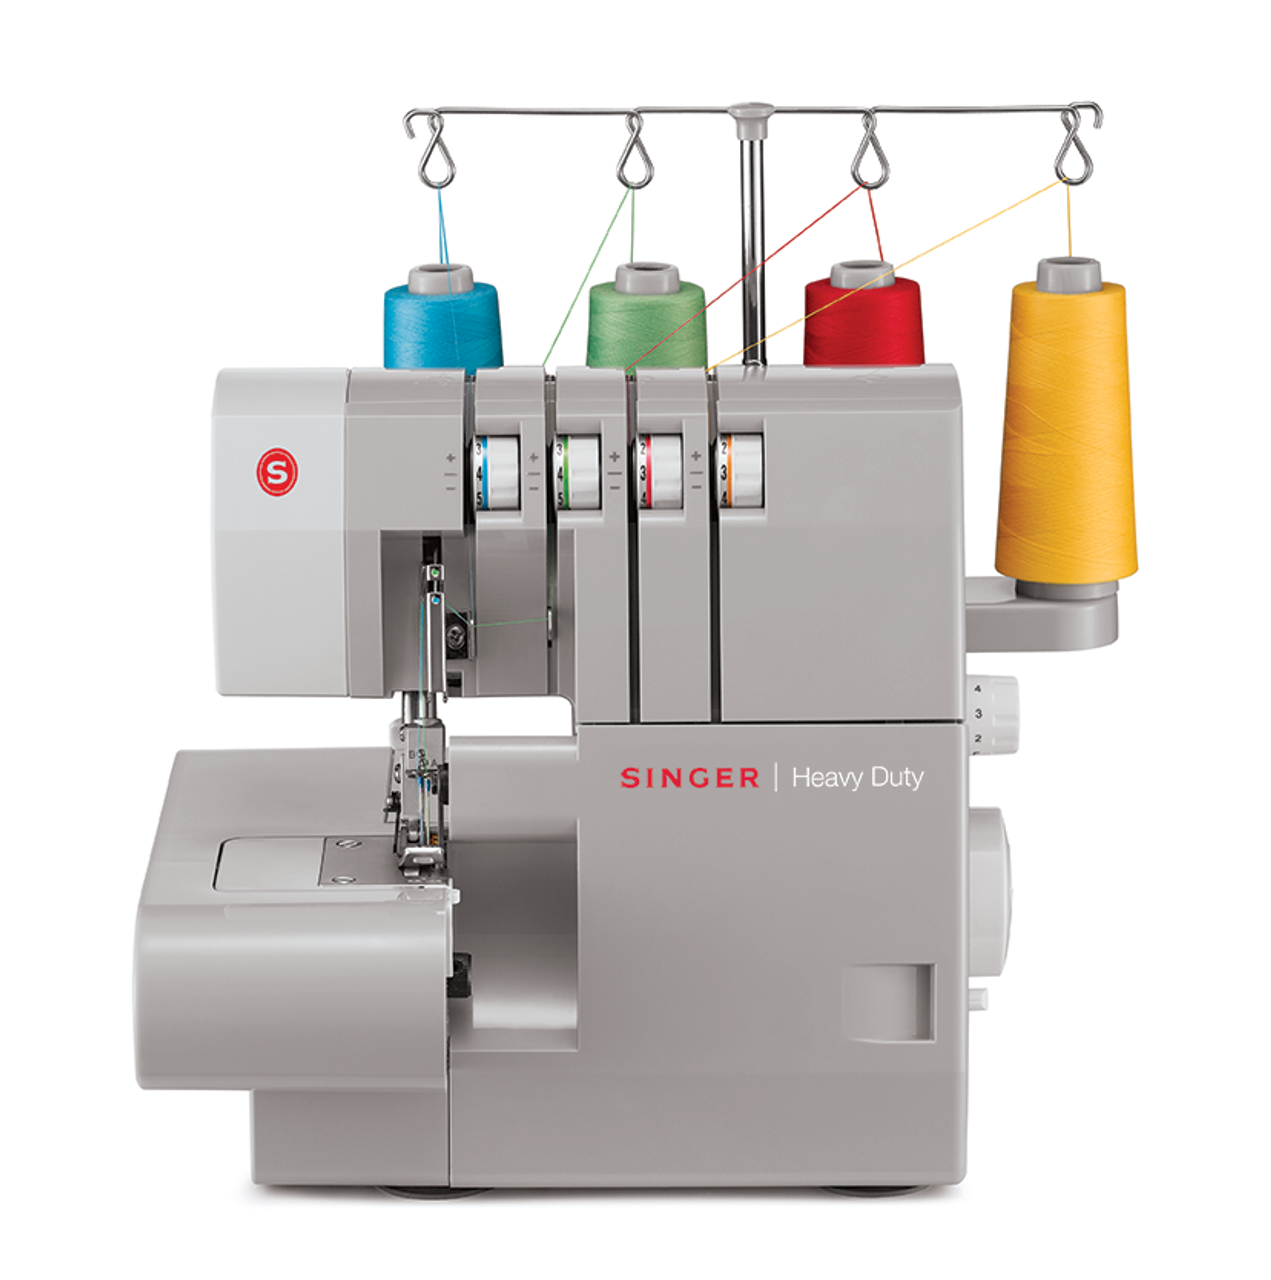 Singer Heavy Duty Combo HD4411 Sewing Machine and 14HD854 Overlocker